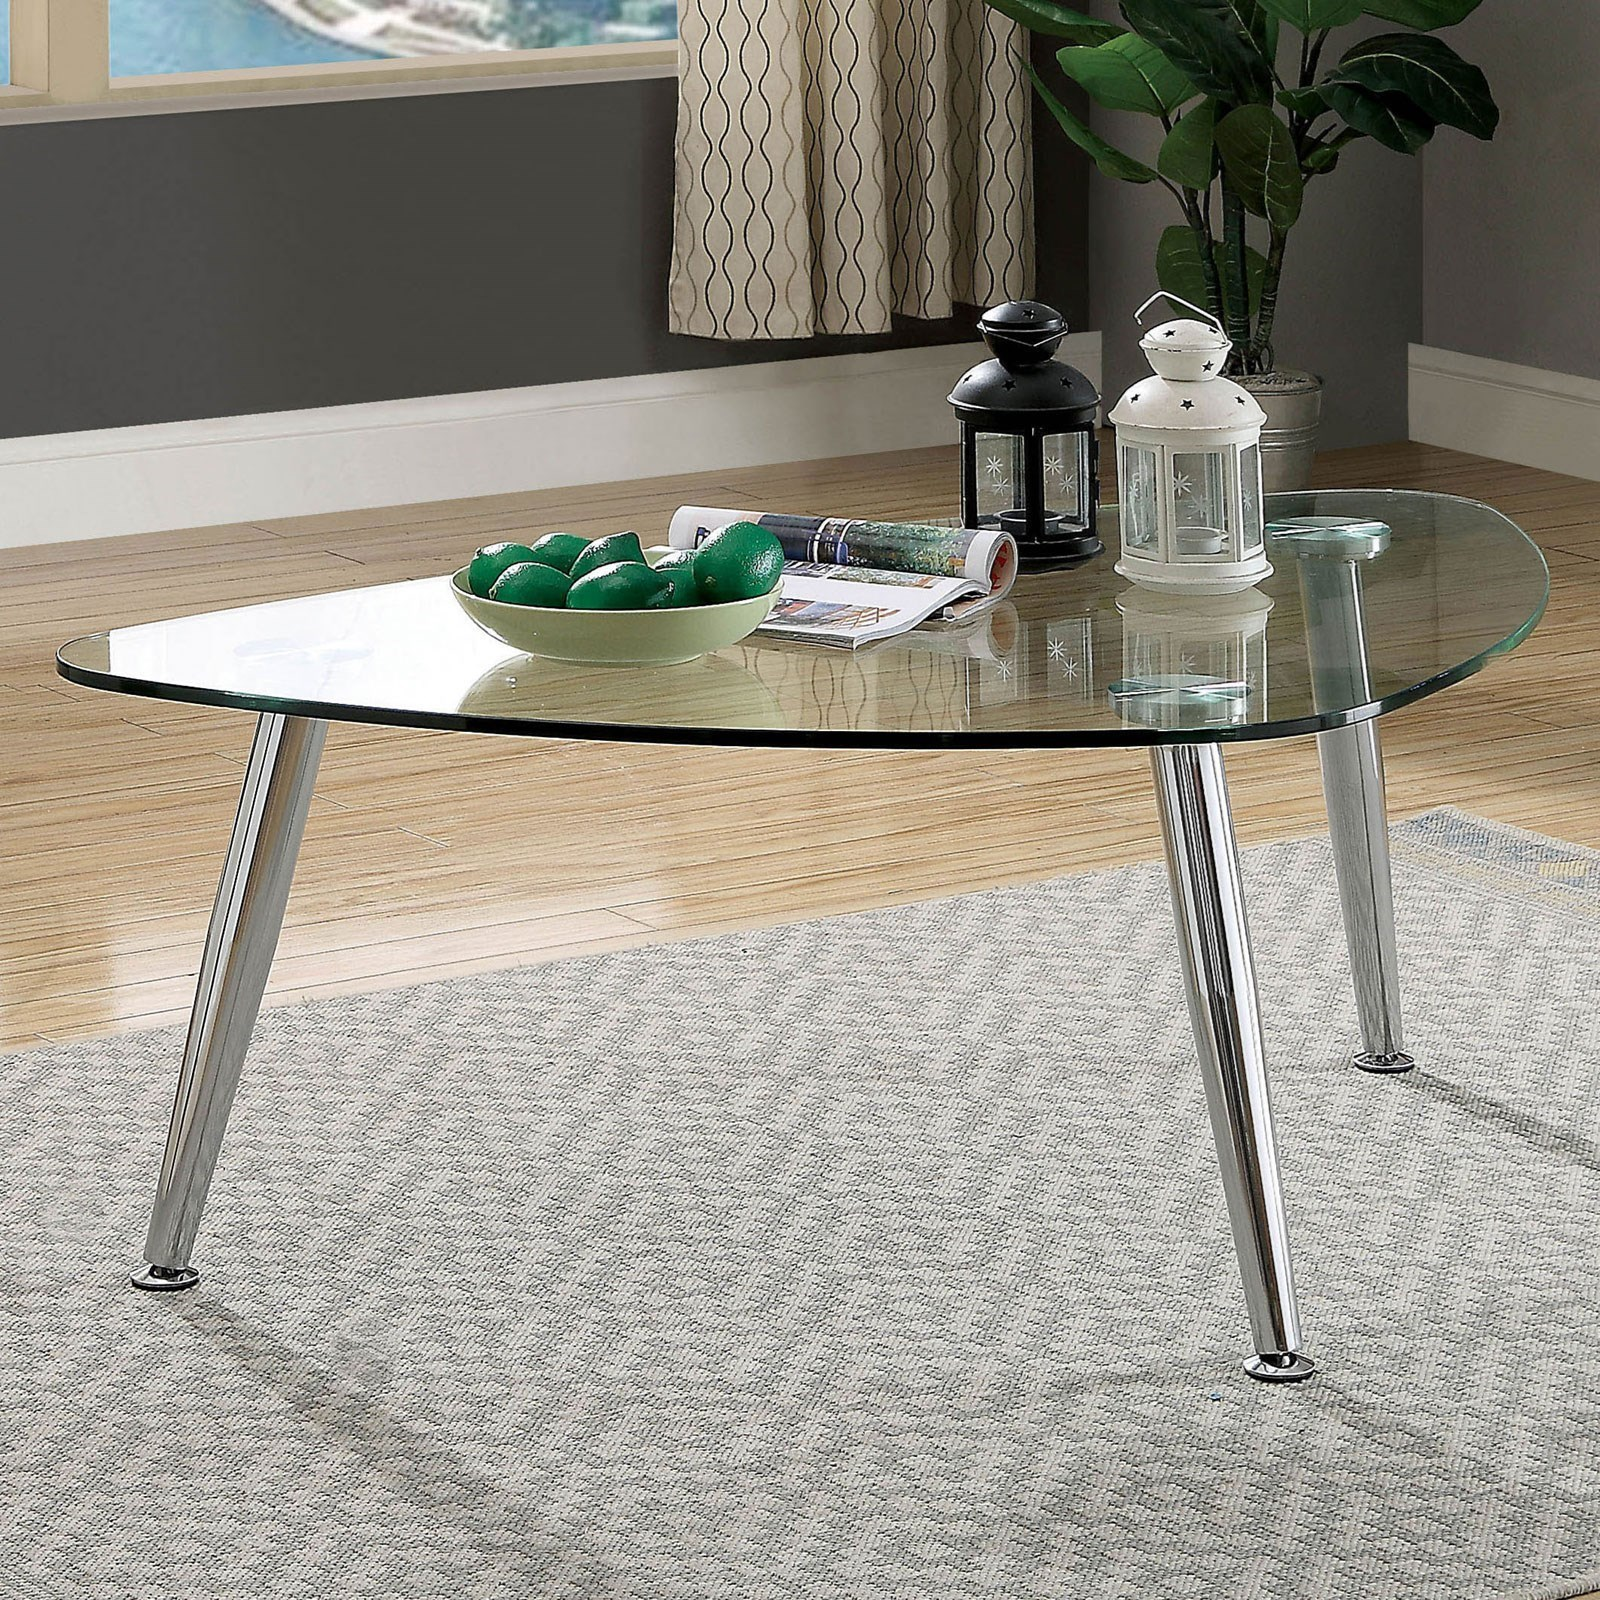 Delany Coffee Table by Furniture of America at Dream Home Interiors